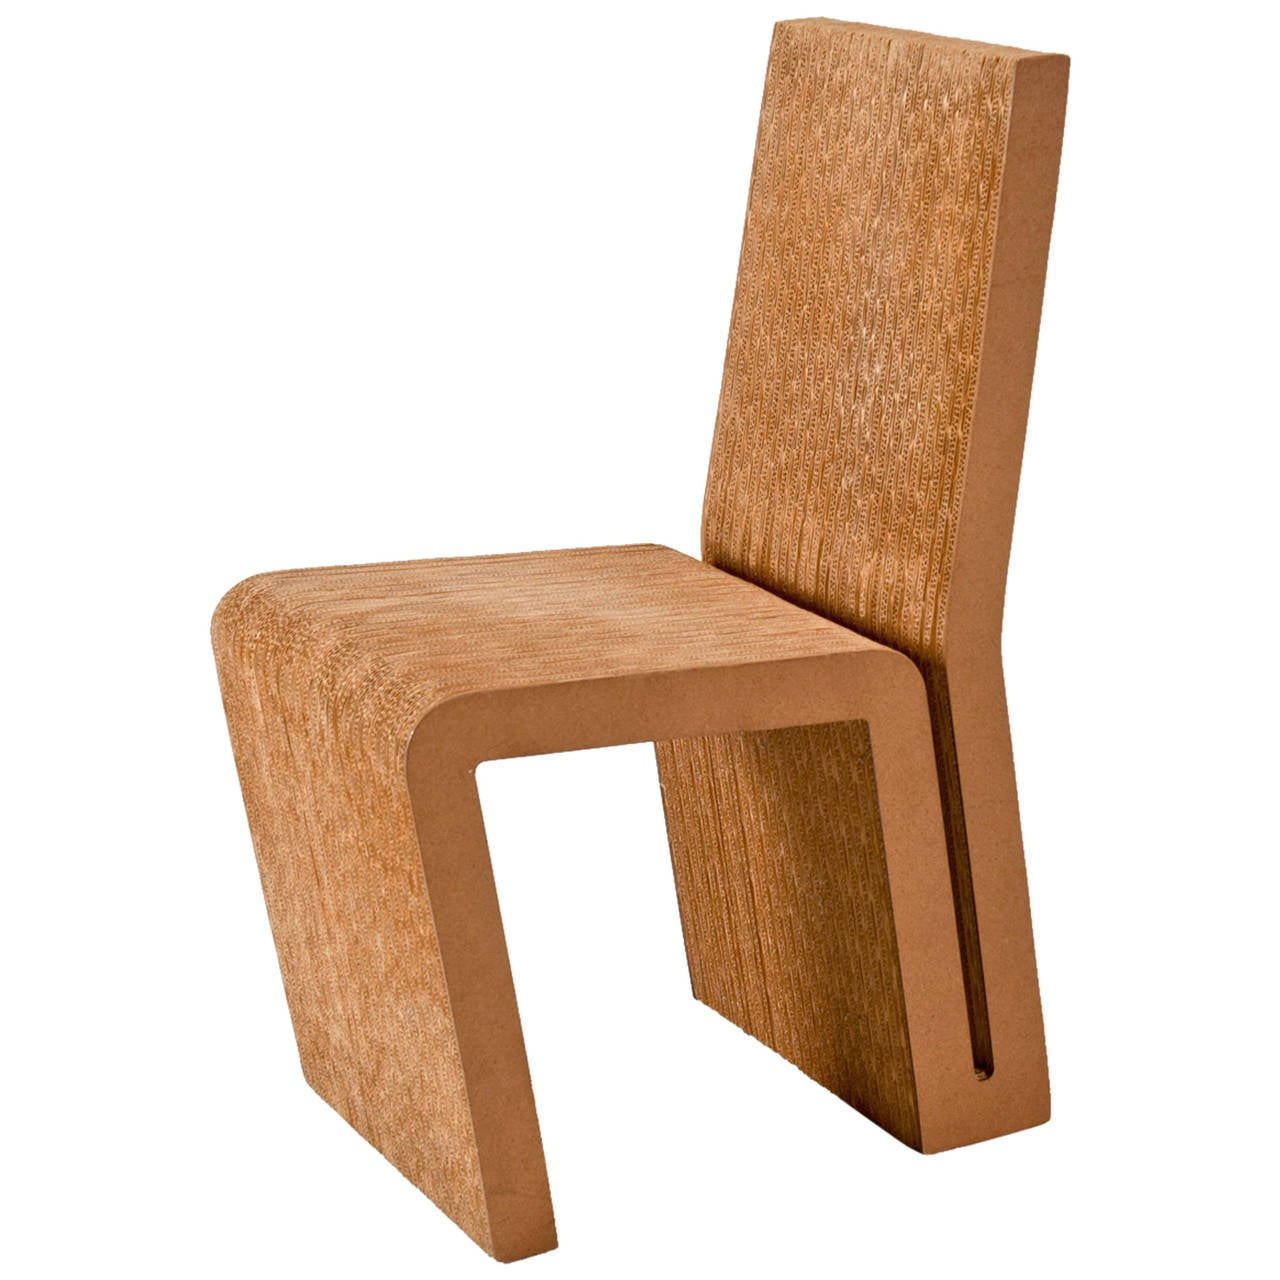 Corrugated Cardboard Furniture Frank Gehry Side Chair In Cardboard For Vitra Edition For Sale At